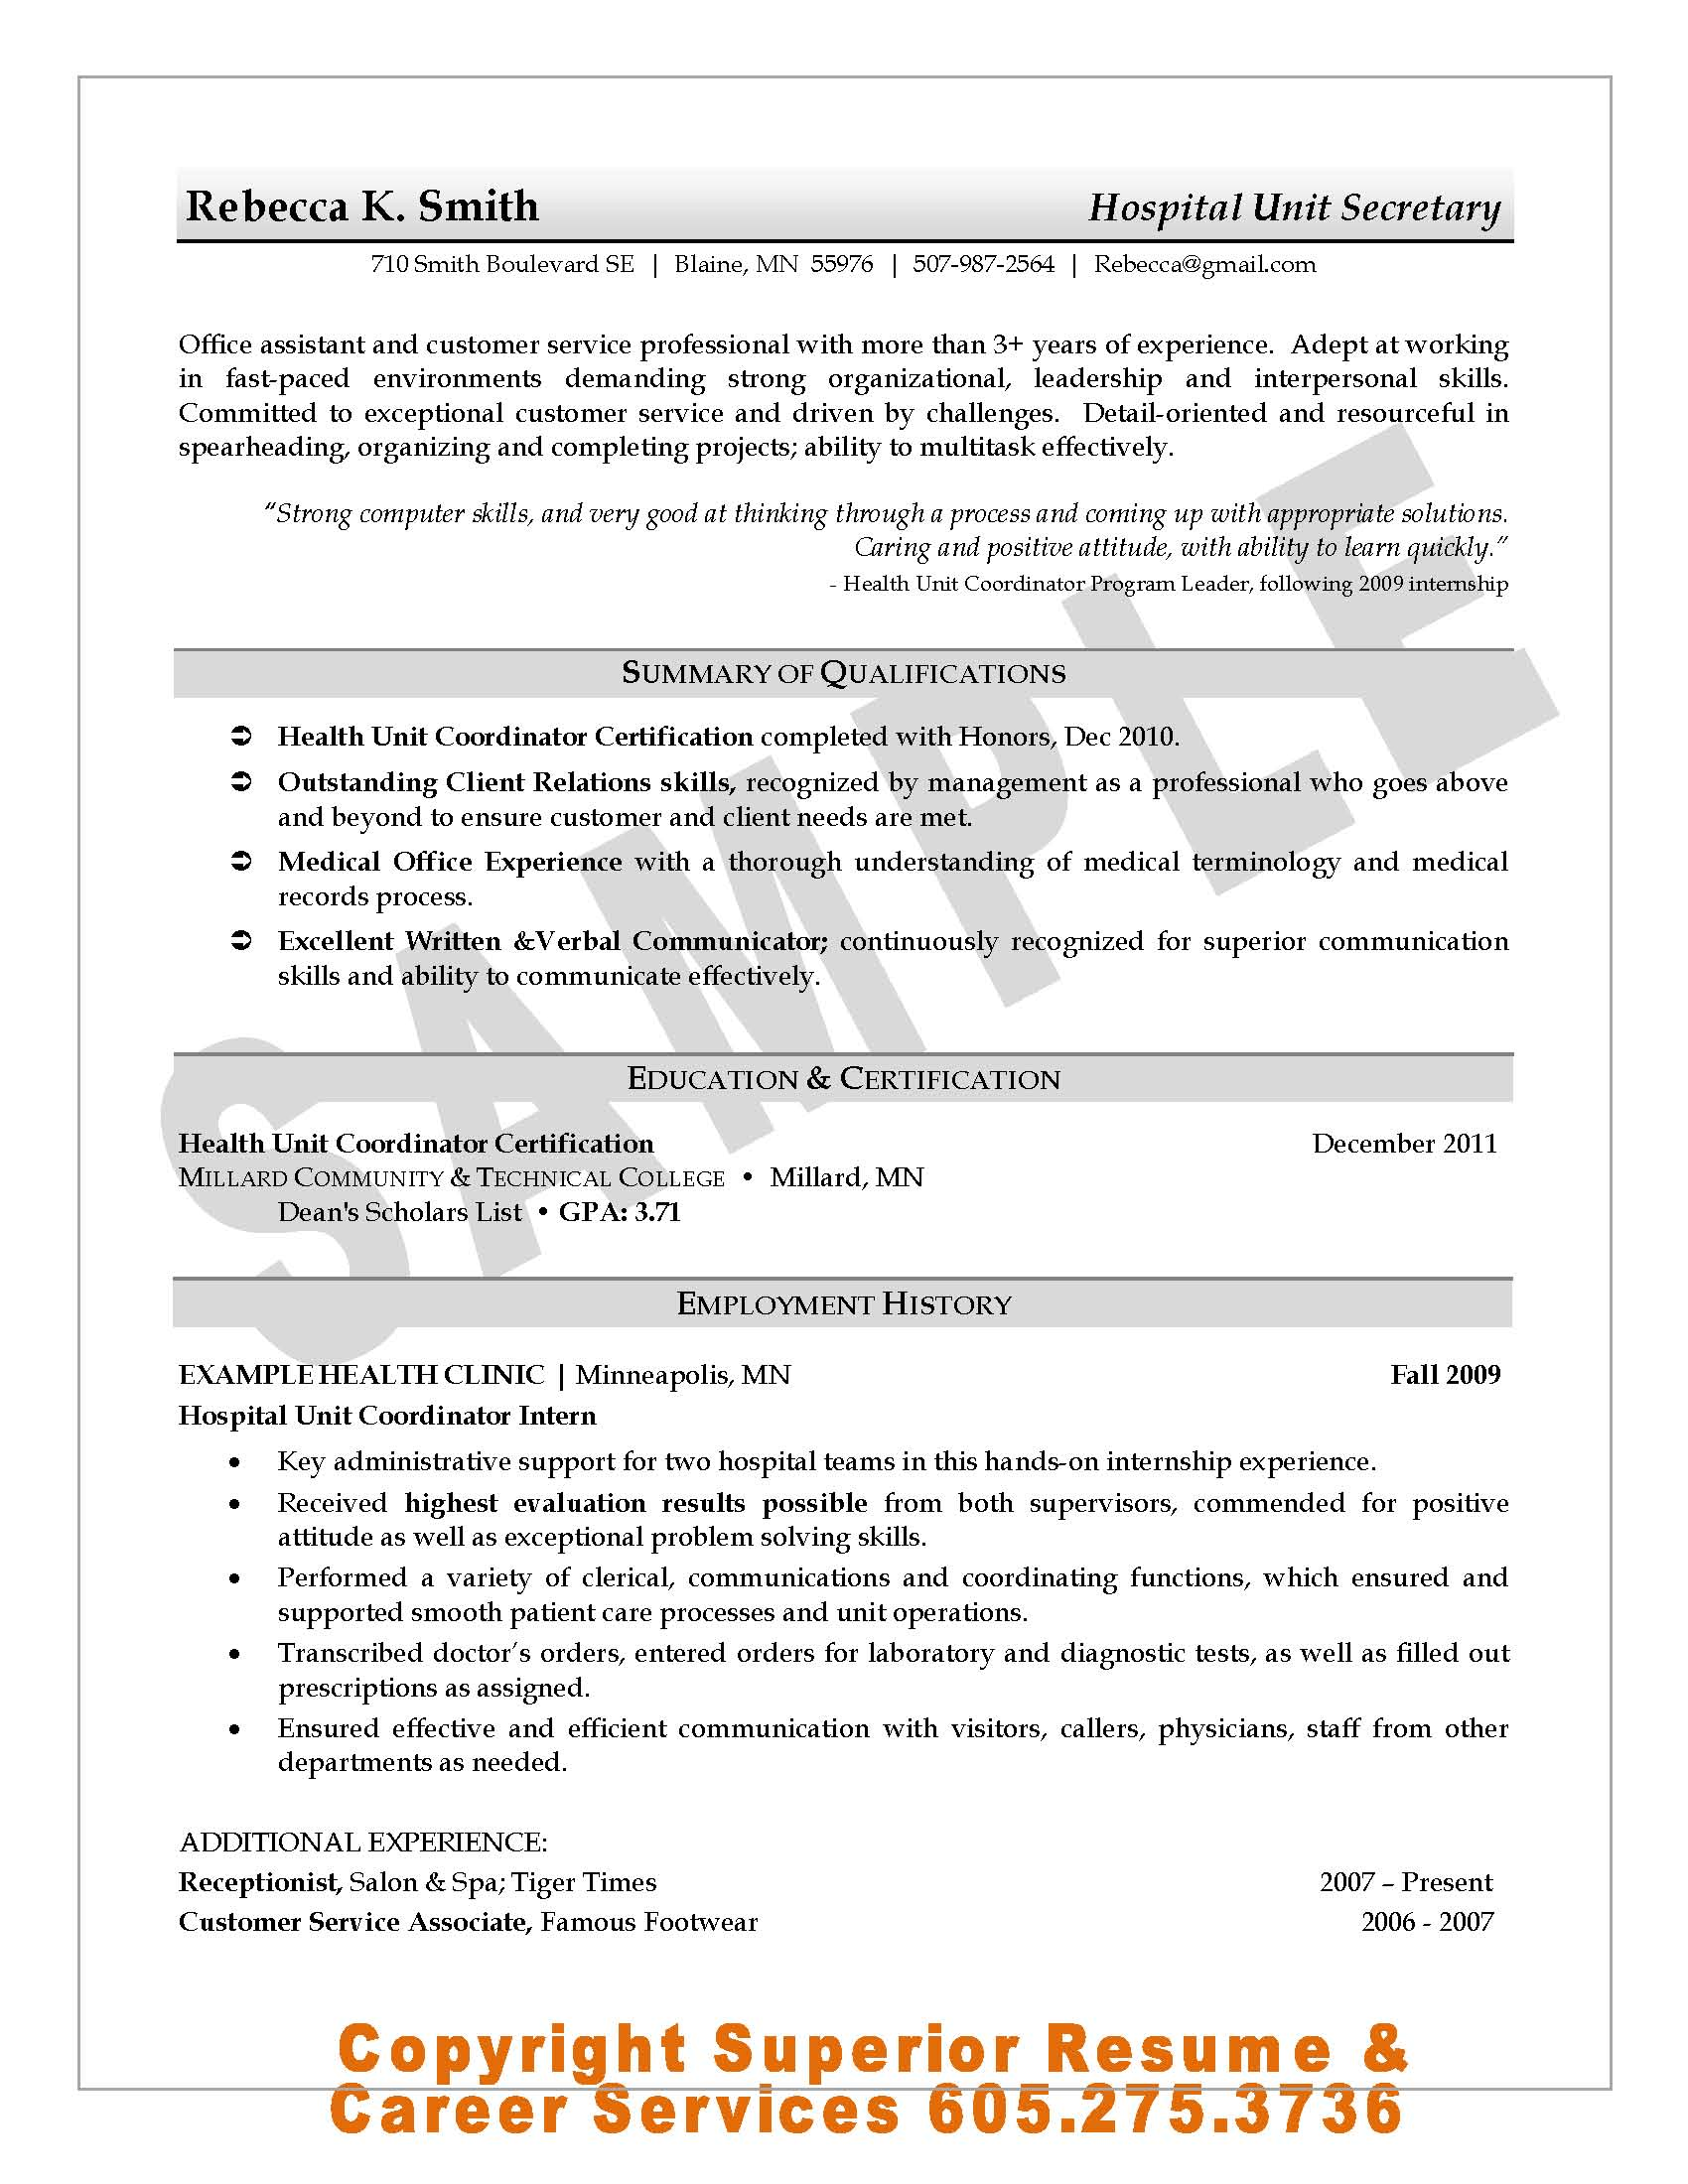 resume format references available upon request